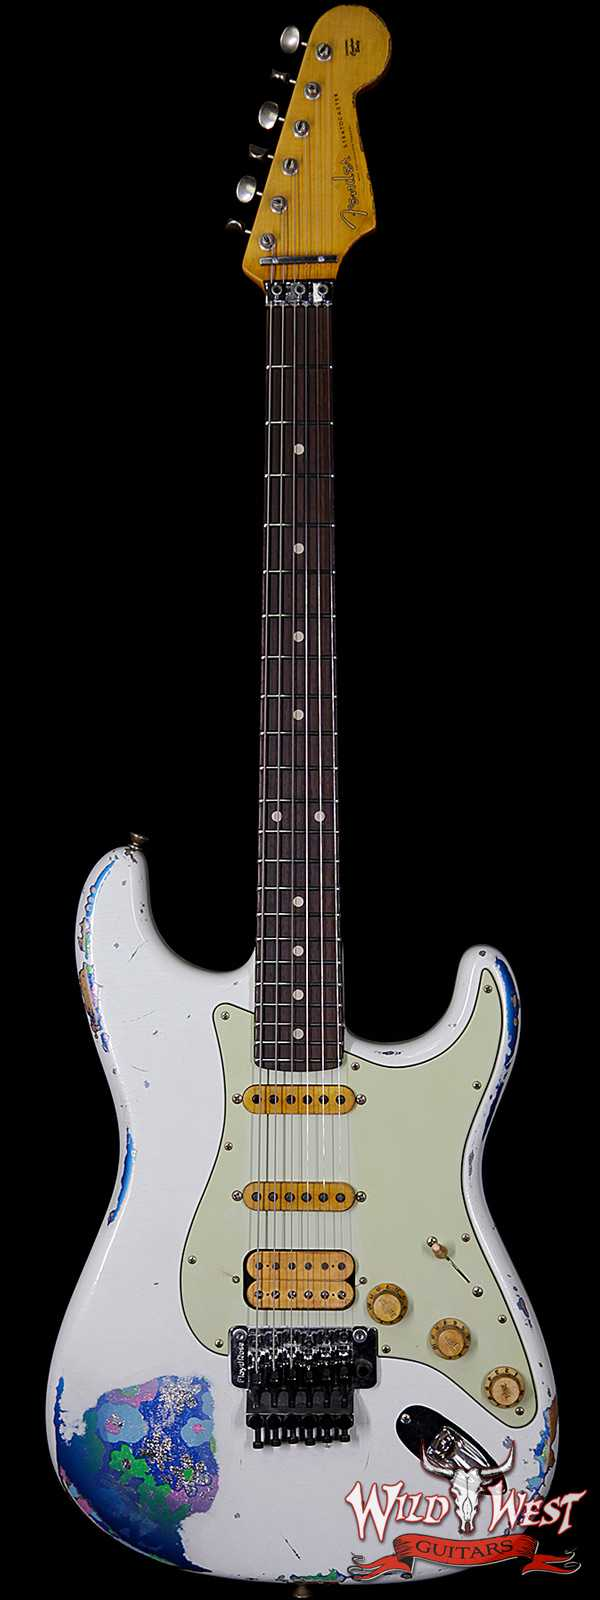 Fender Custom Shop White Lightning Stratocaster HSS Floyd Rose Heavy Relic Rosewood Board 22 Frets Blue Flower